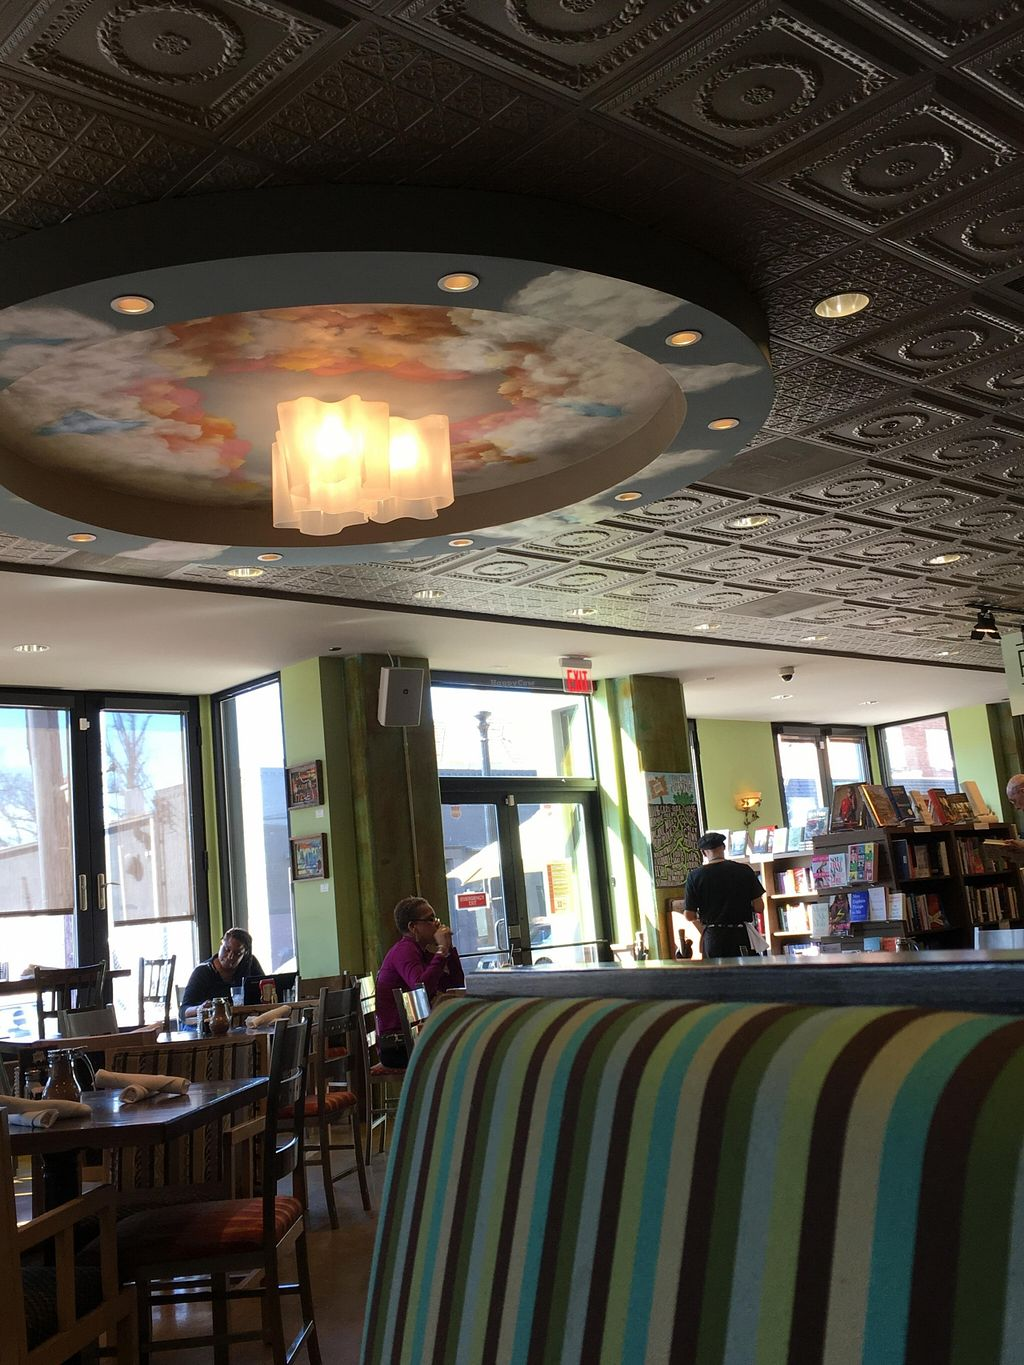 """Photo of Busboys and Poets - Carroll St  by <a href=""""/members/profile/cookiem"""">cookiem</a> <br/>More seating <br/> April 2, 2016  - <a href='/contact/abuse/image/56092/142383'>Report</a>"""